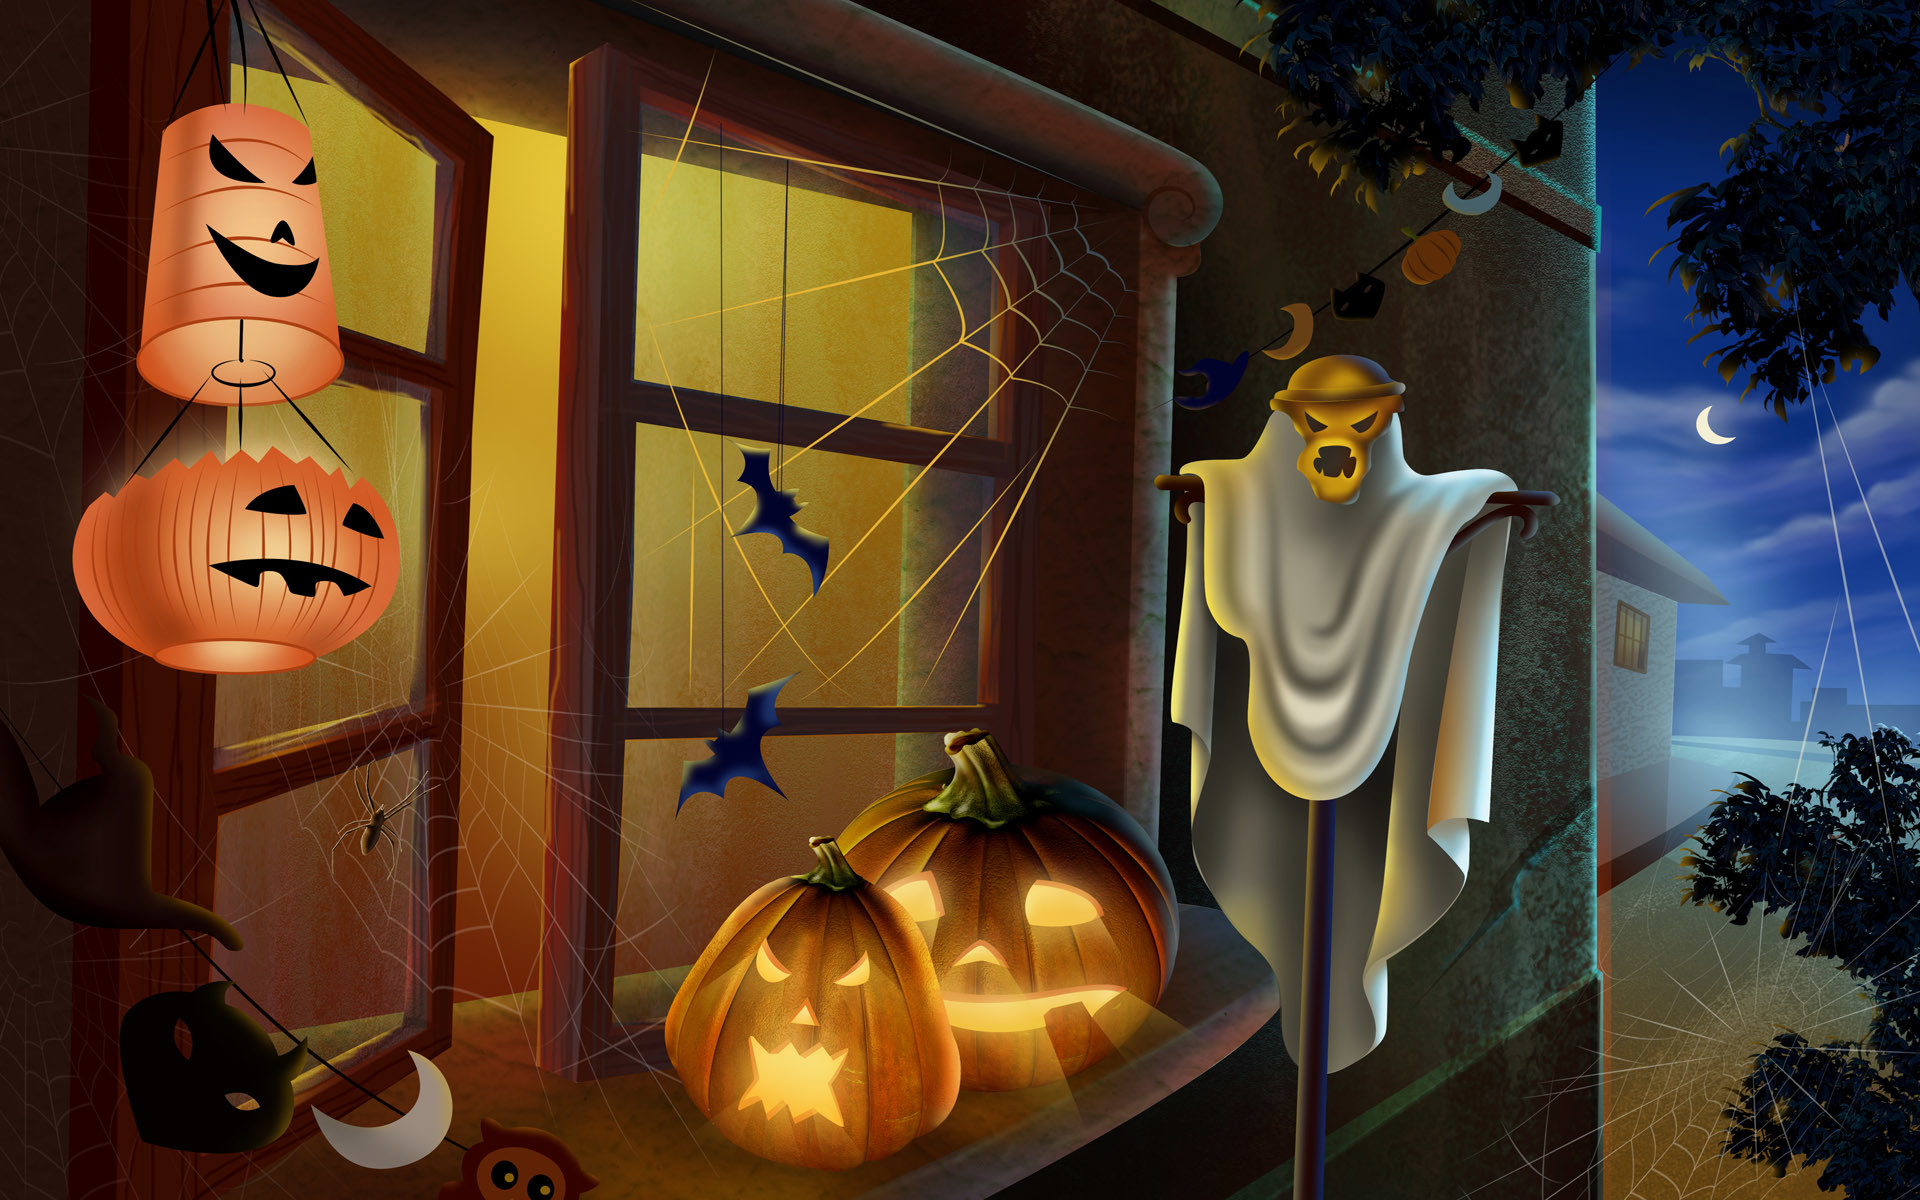 Scary Halloween 2012 HD Wallpapers   Pumpkins, Witches, Spider Web .